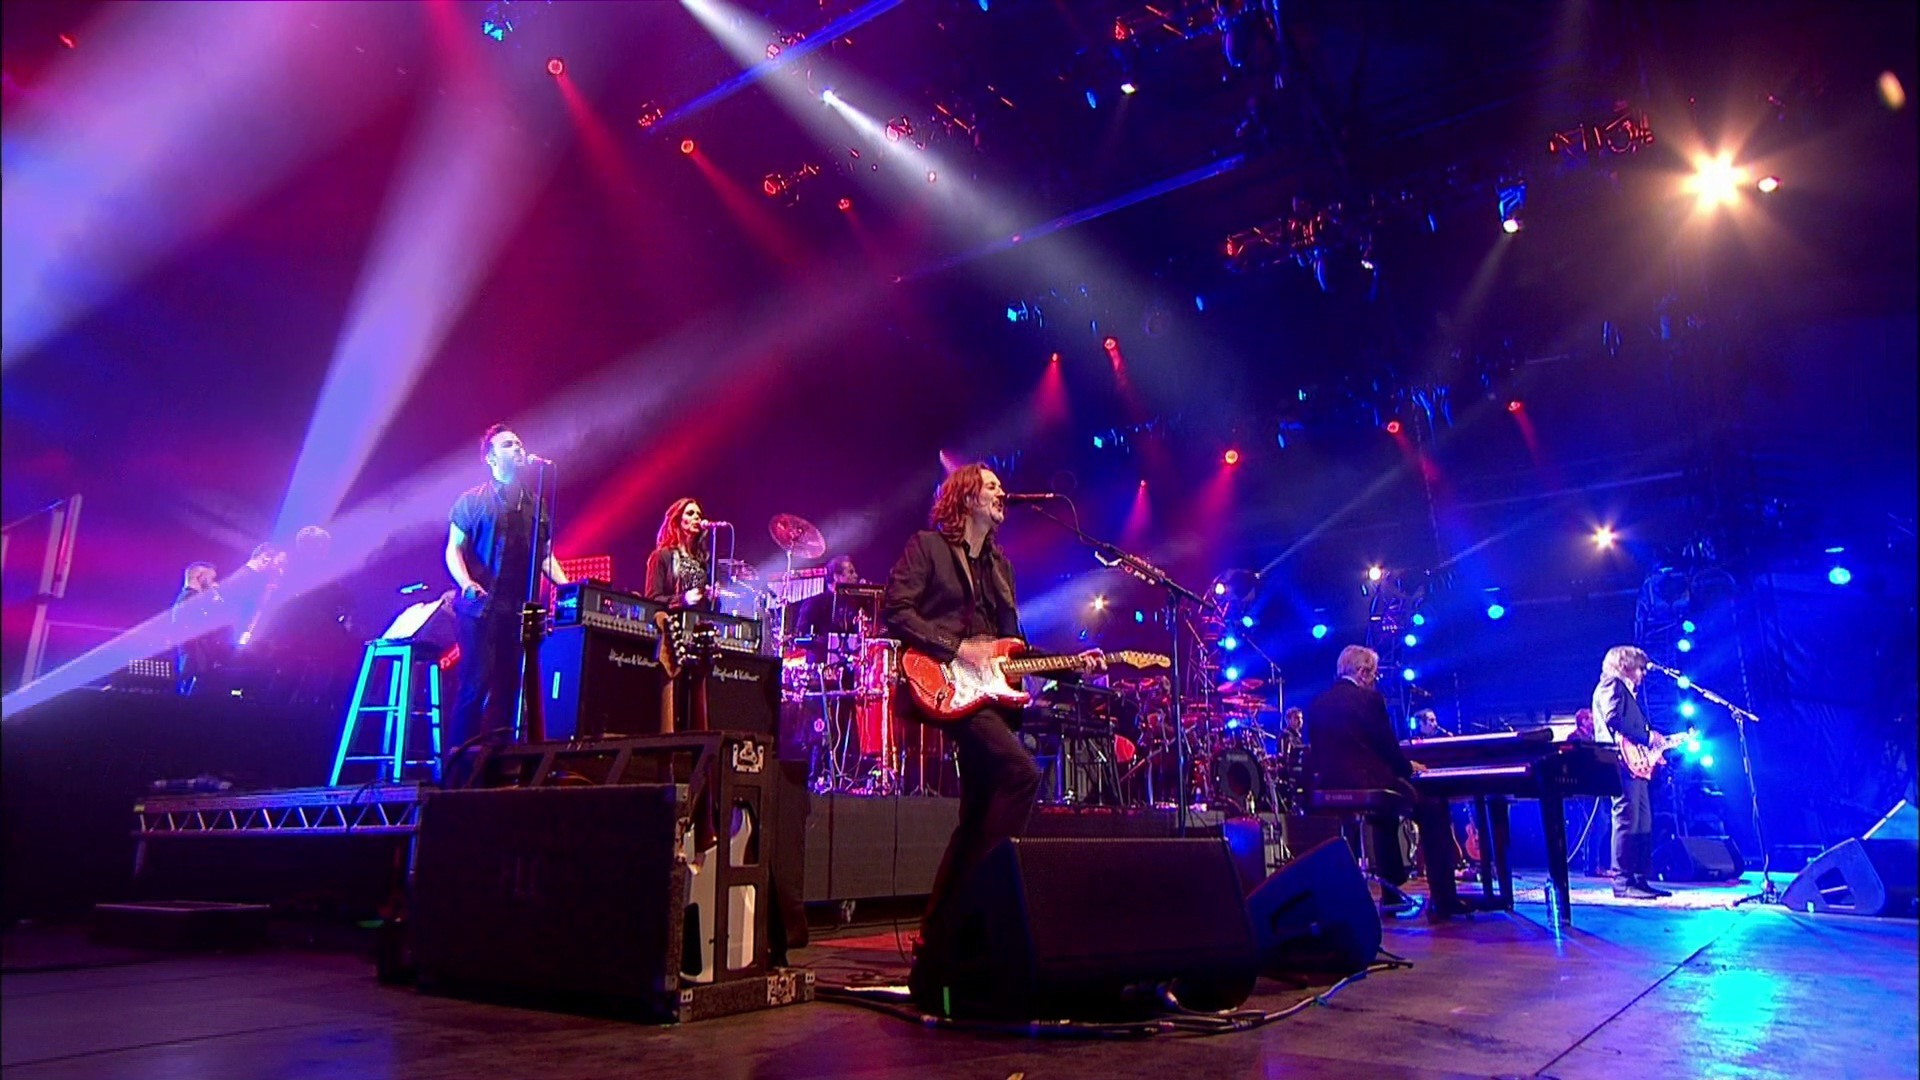 1920x1080 Jeff Lynne's Electric Light Orchestra - Live at Hyde Park (2014) [HDTV  1080i]